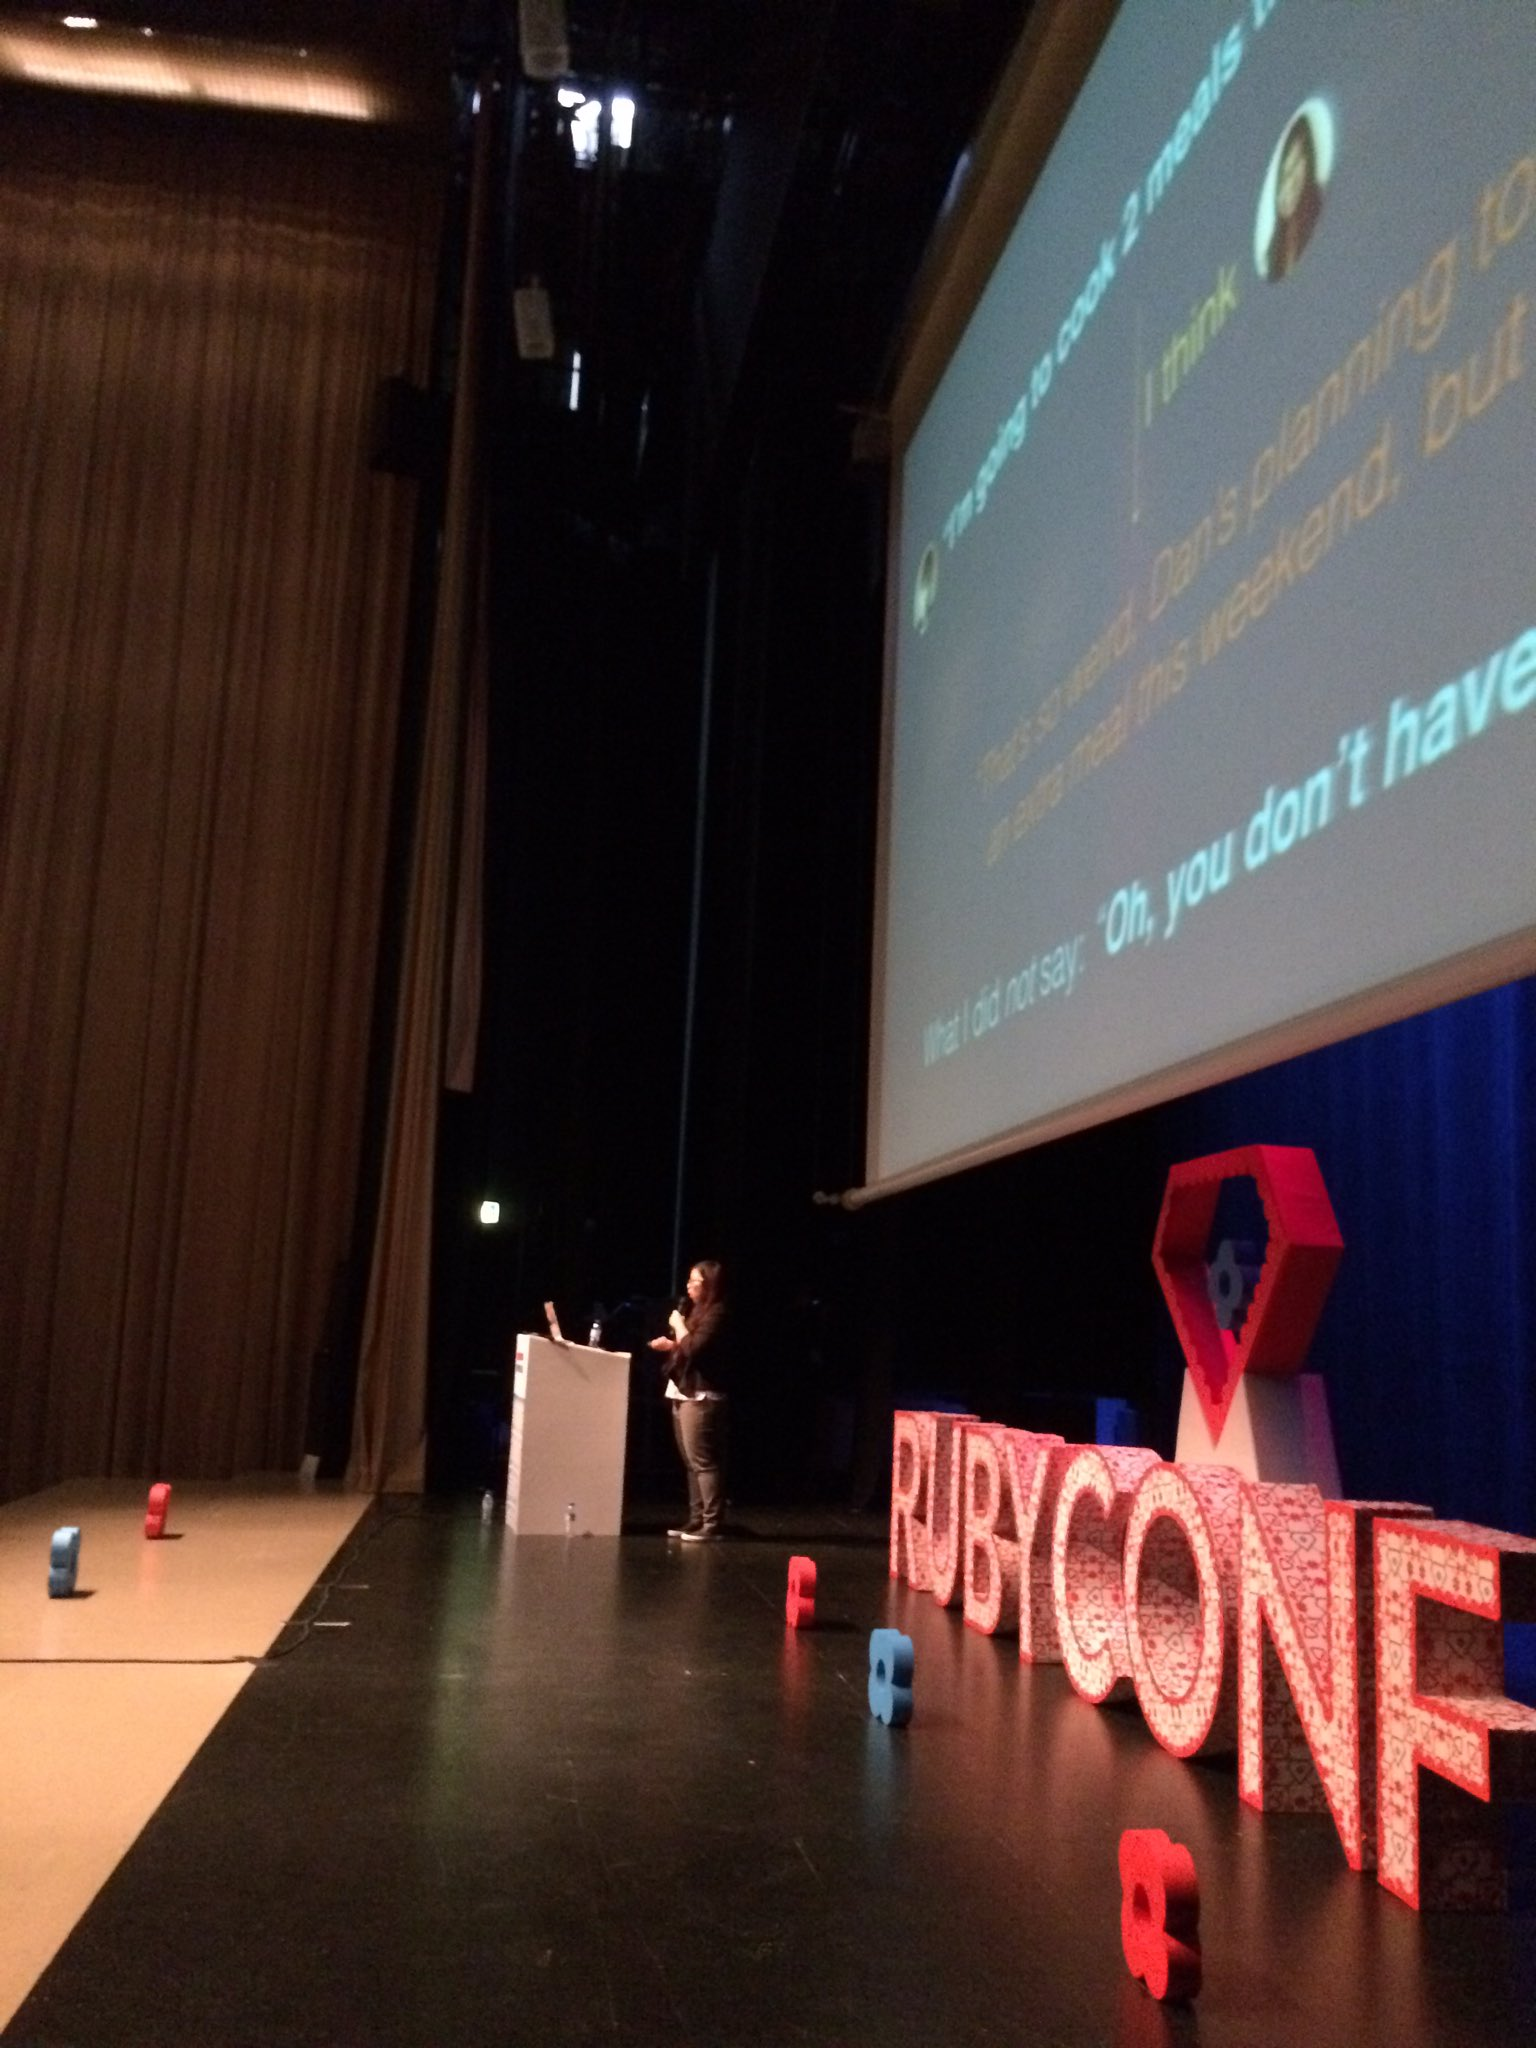 "Coffee-break over, time for the awesome @kwugirl talk ""Ask vs Guess Culture Communication"" #rubyconfpt https://t.co/09NcTqXzr2"